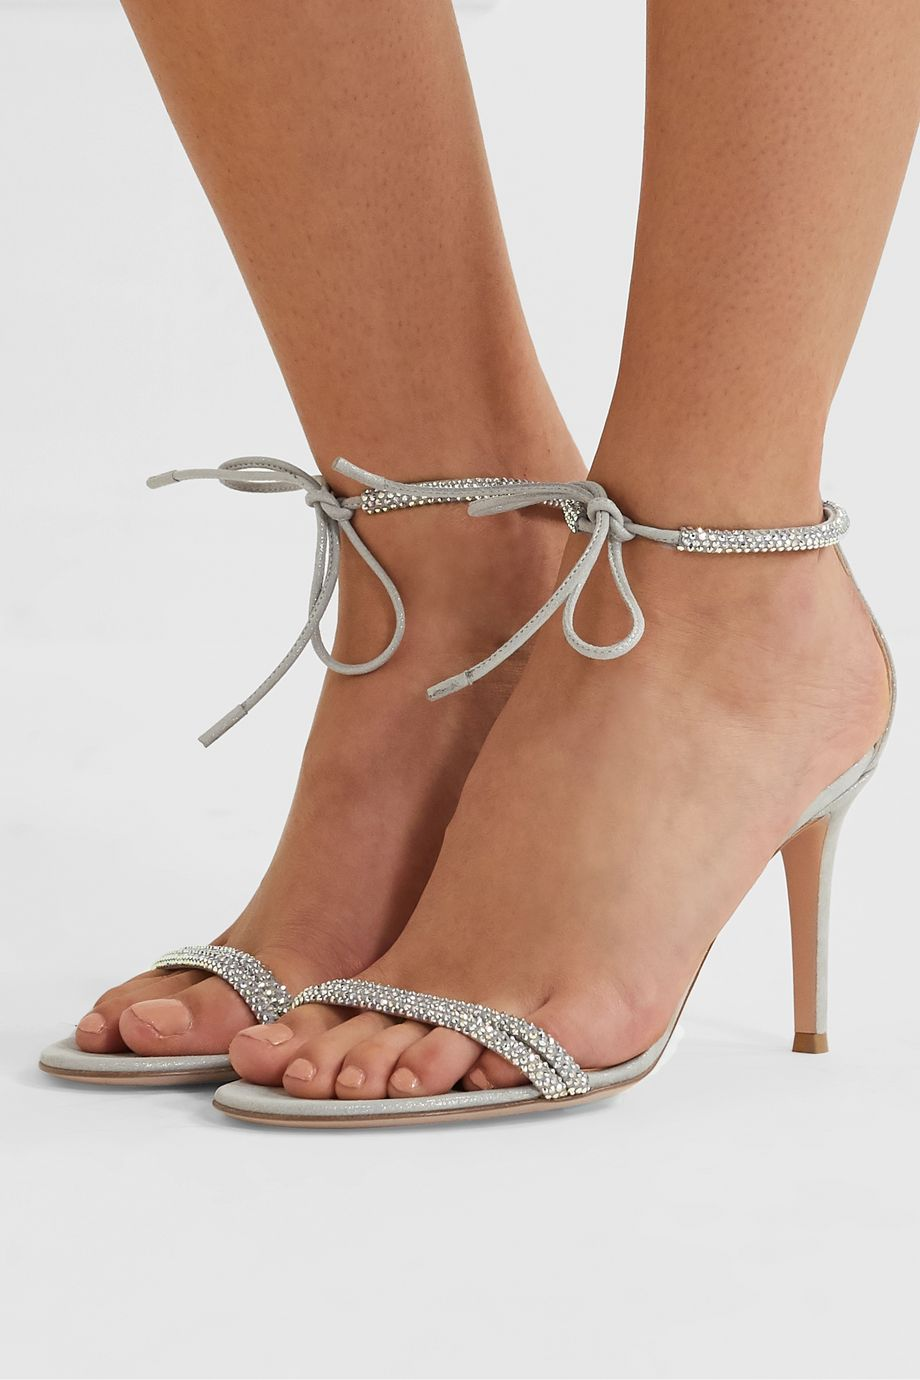 Gianvito Rossi 85 crystal-embellished iridescent suede sandals